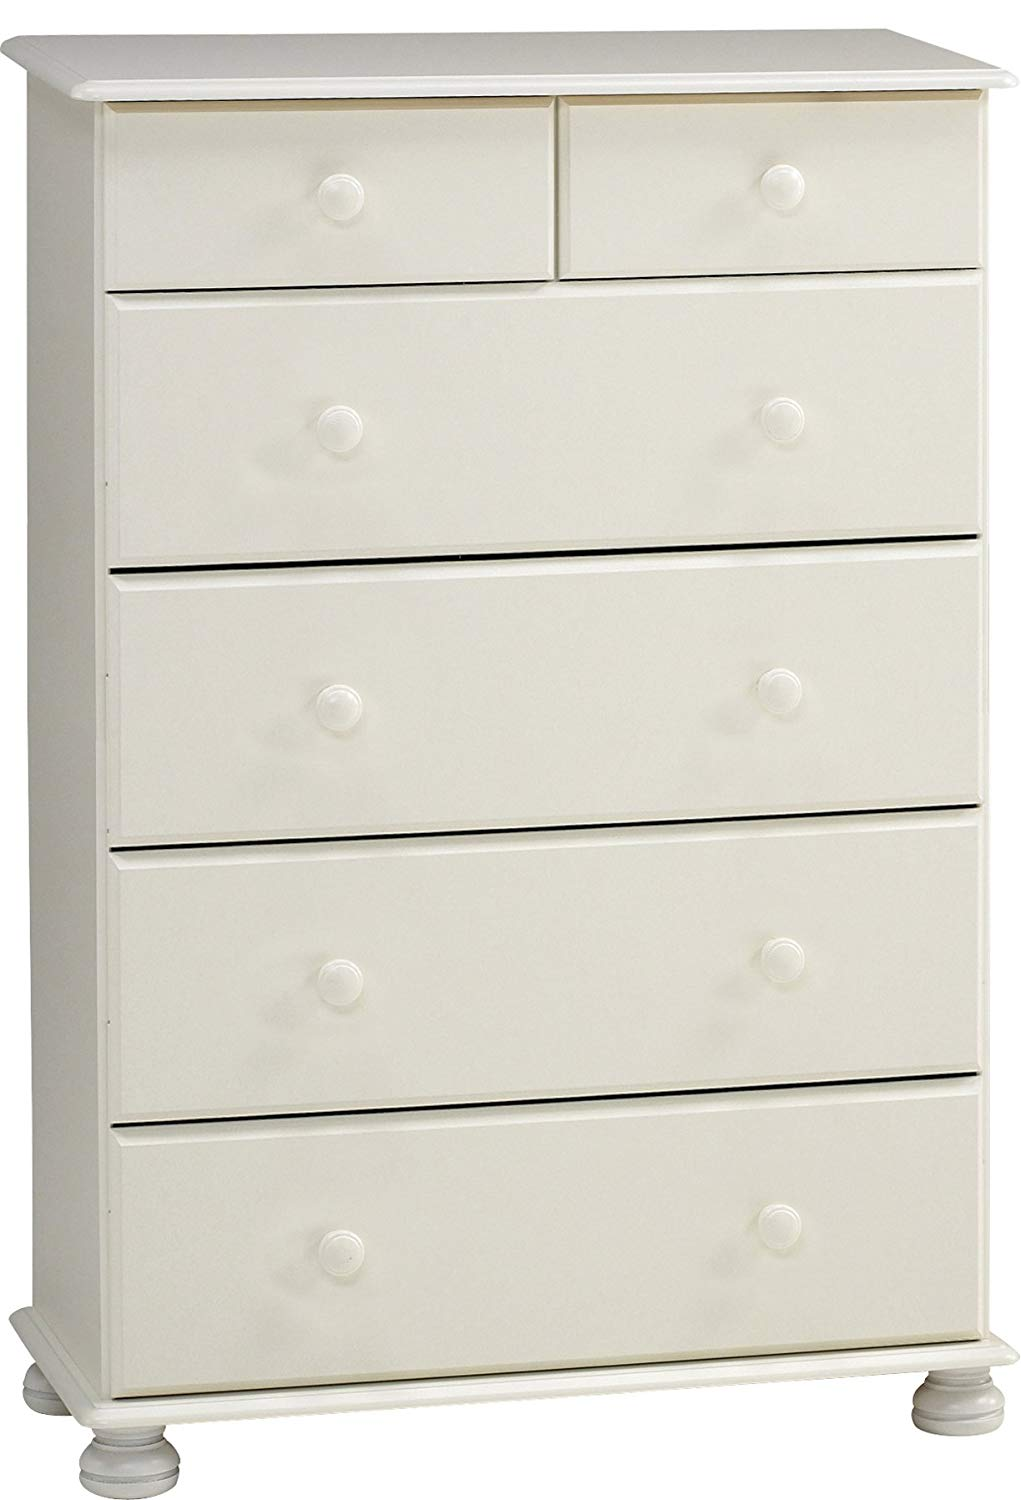 This Arctic White MDF Chest has 2 narrow and 4 wide, deep drawers. It features knob handles and bun feet. Many matching pieces available. DIMENSIONS are Height: 1219 mm,  Width: 824 mm,  Depth: 468 mm